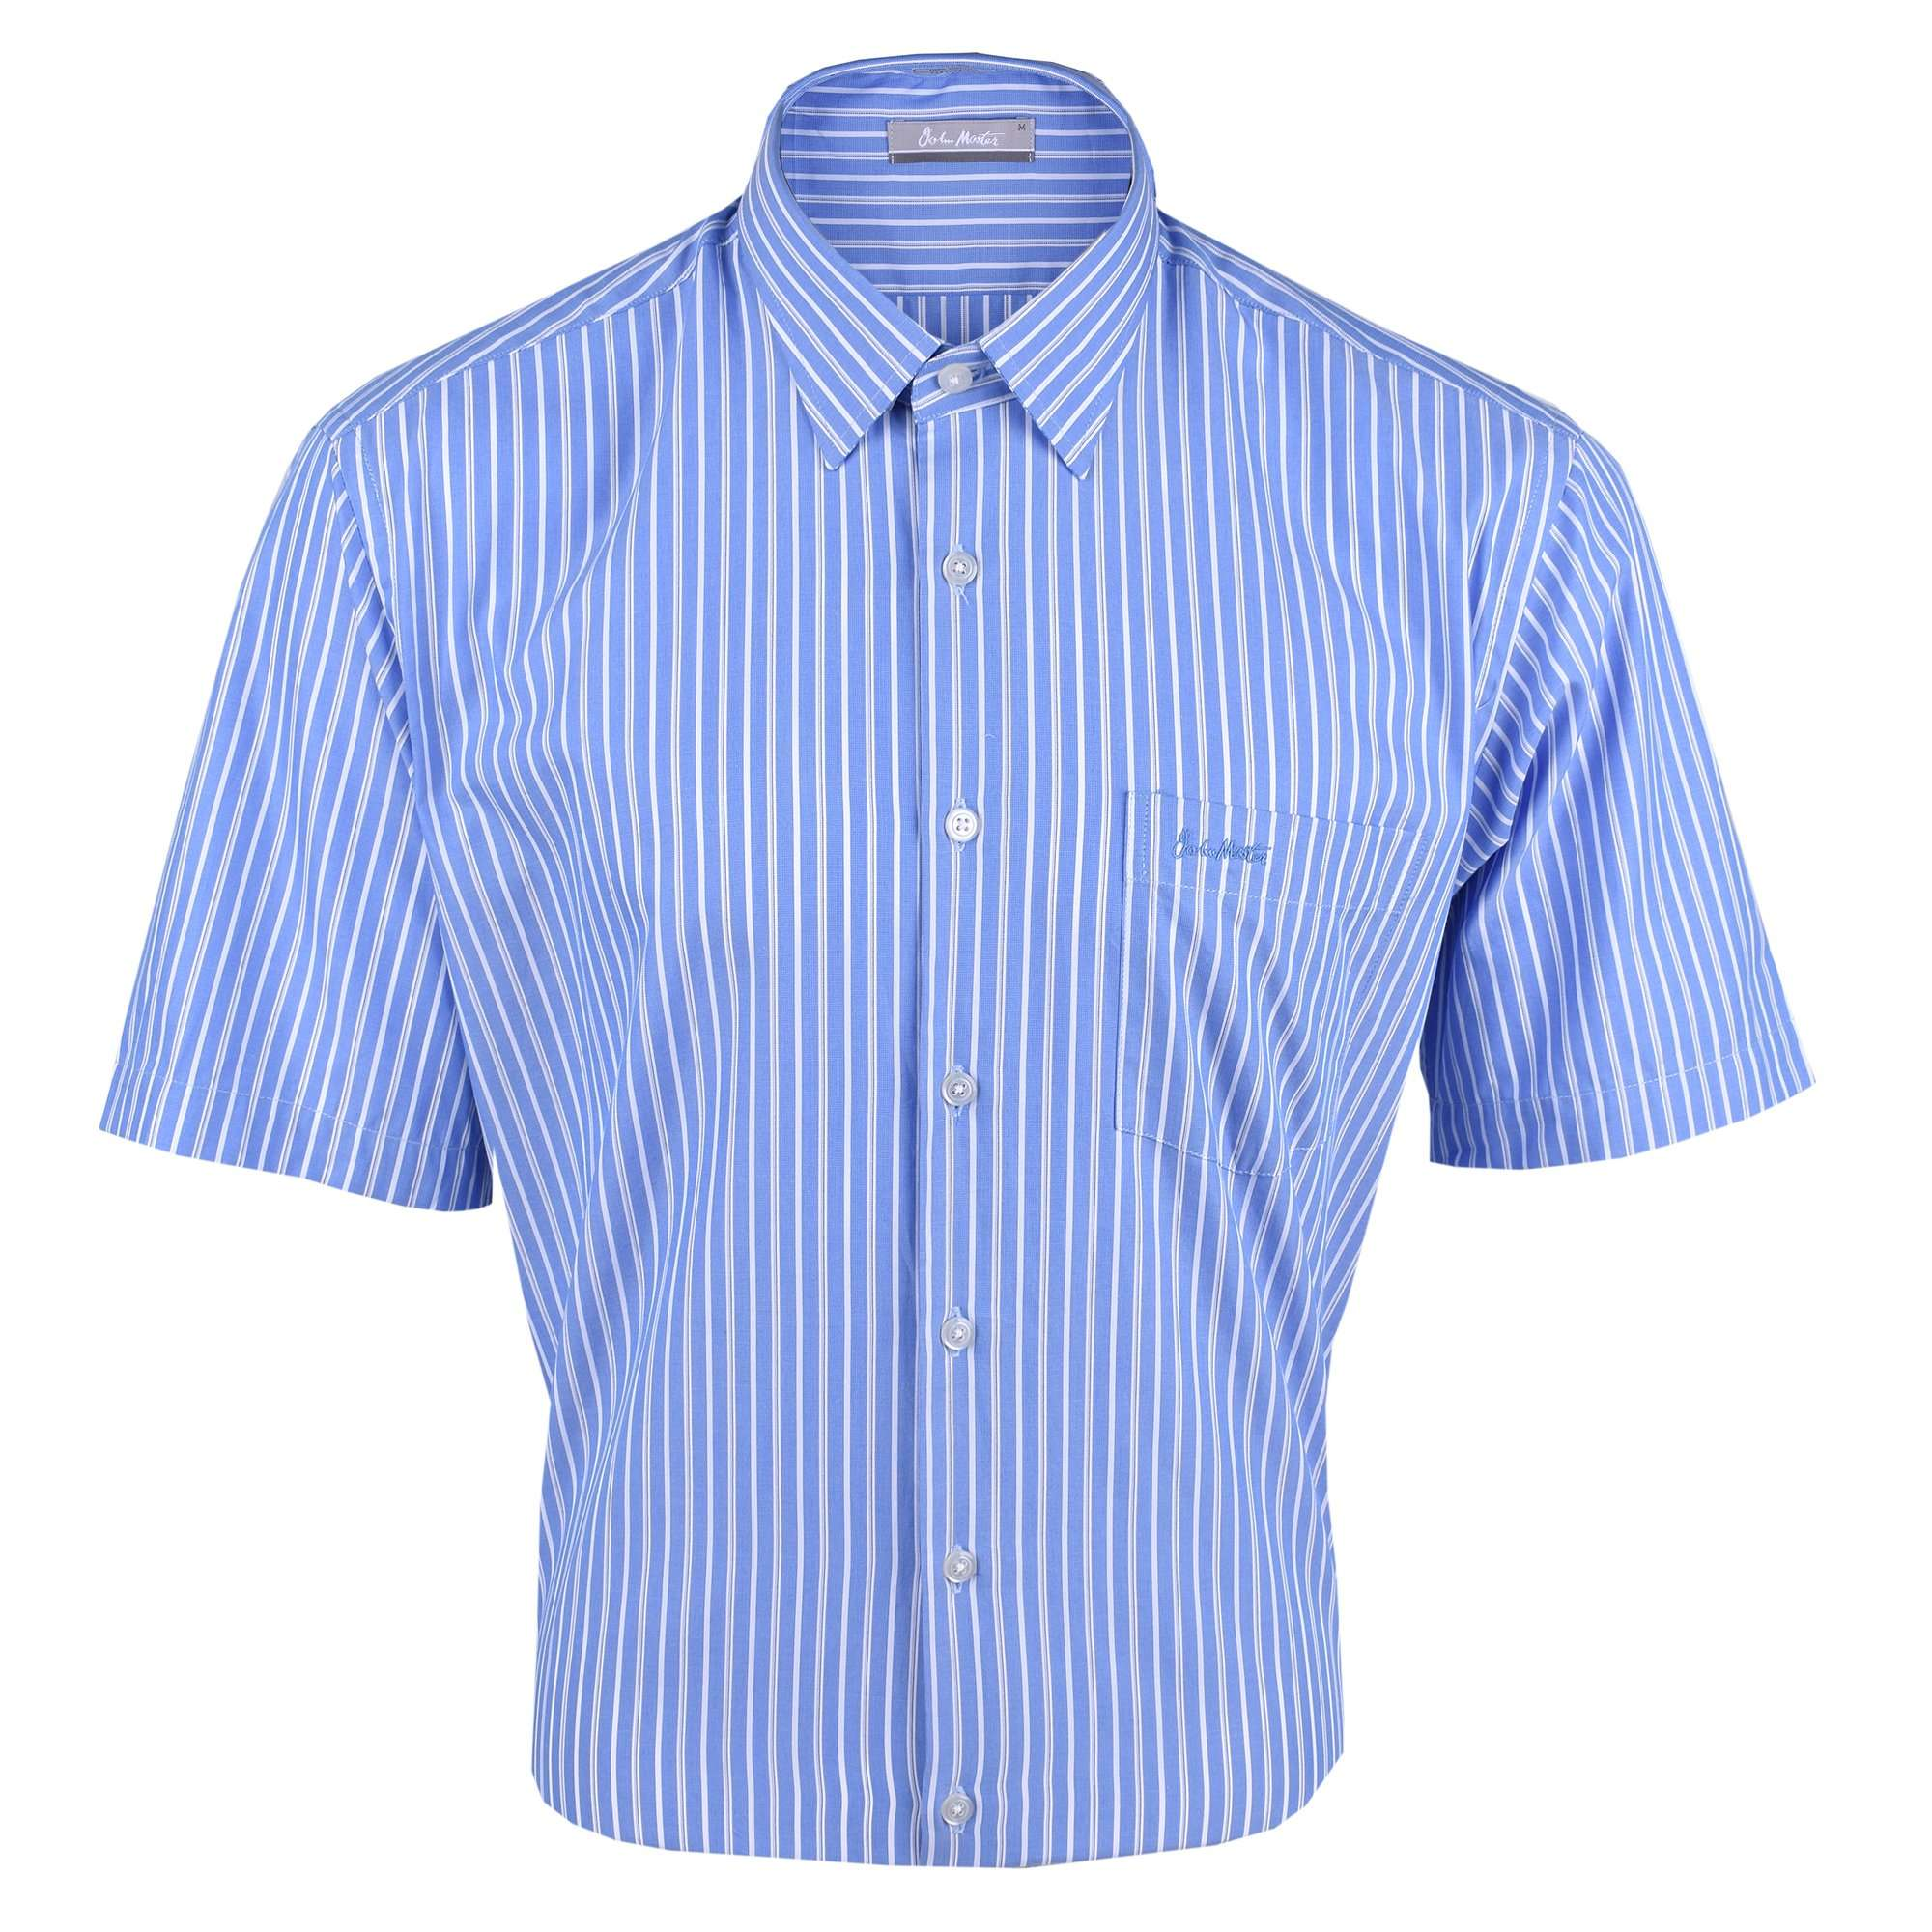 John Master Men Casual Regular Fit Shirt Blue 7147038-L5 : Buy John Master online at CMG.MY